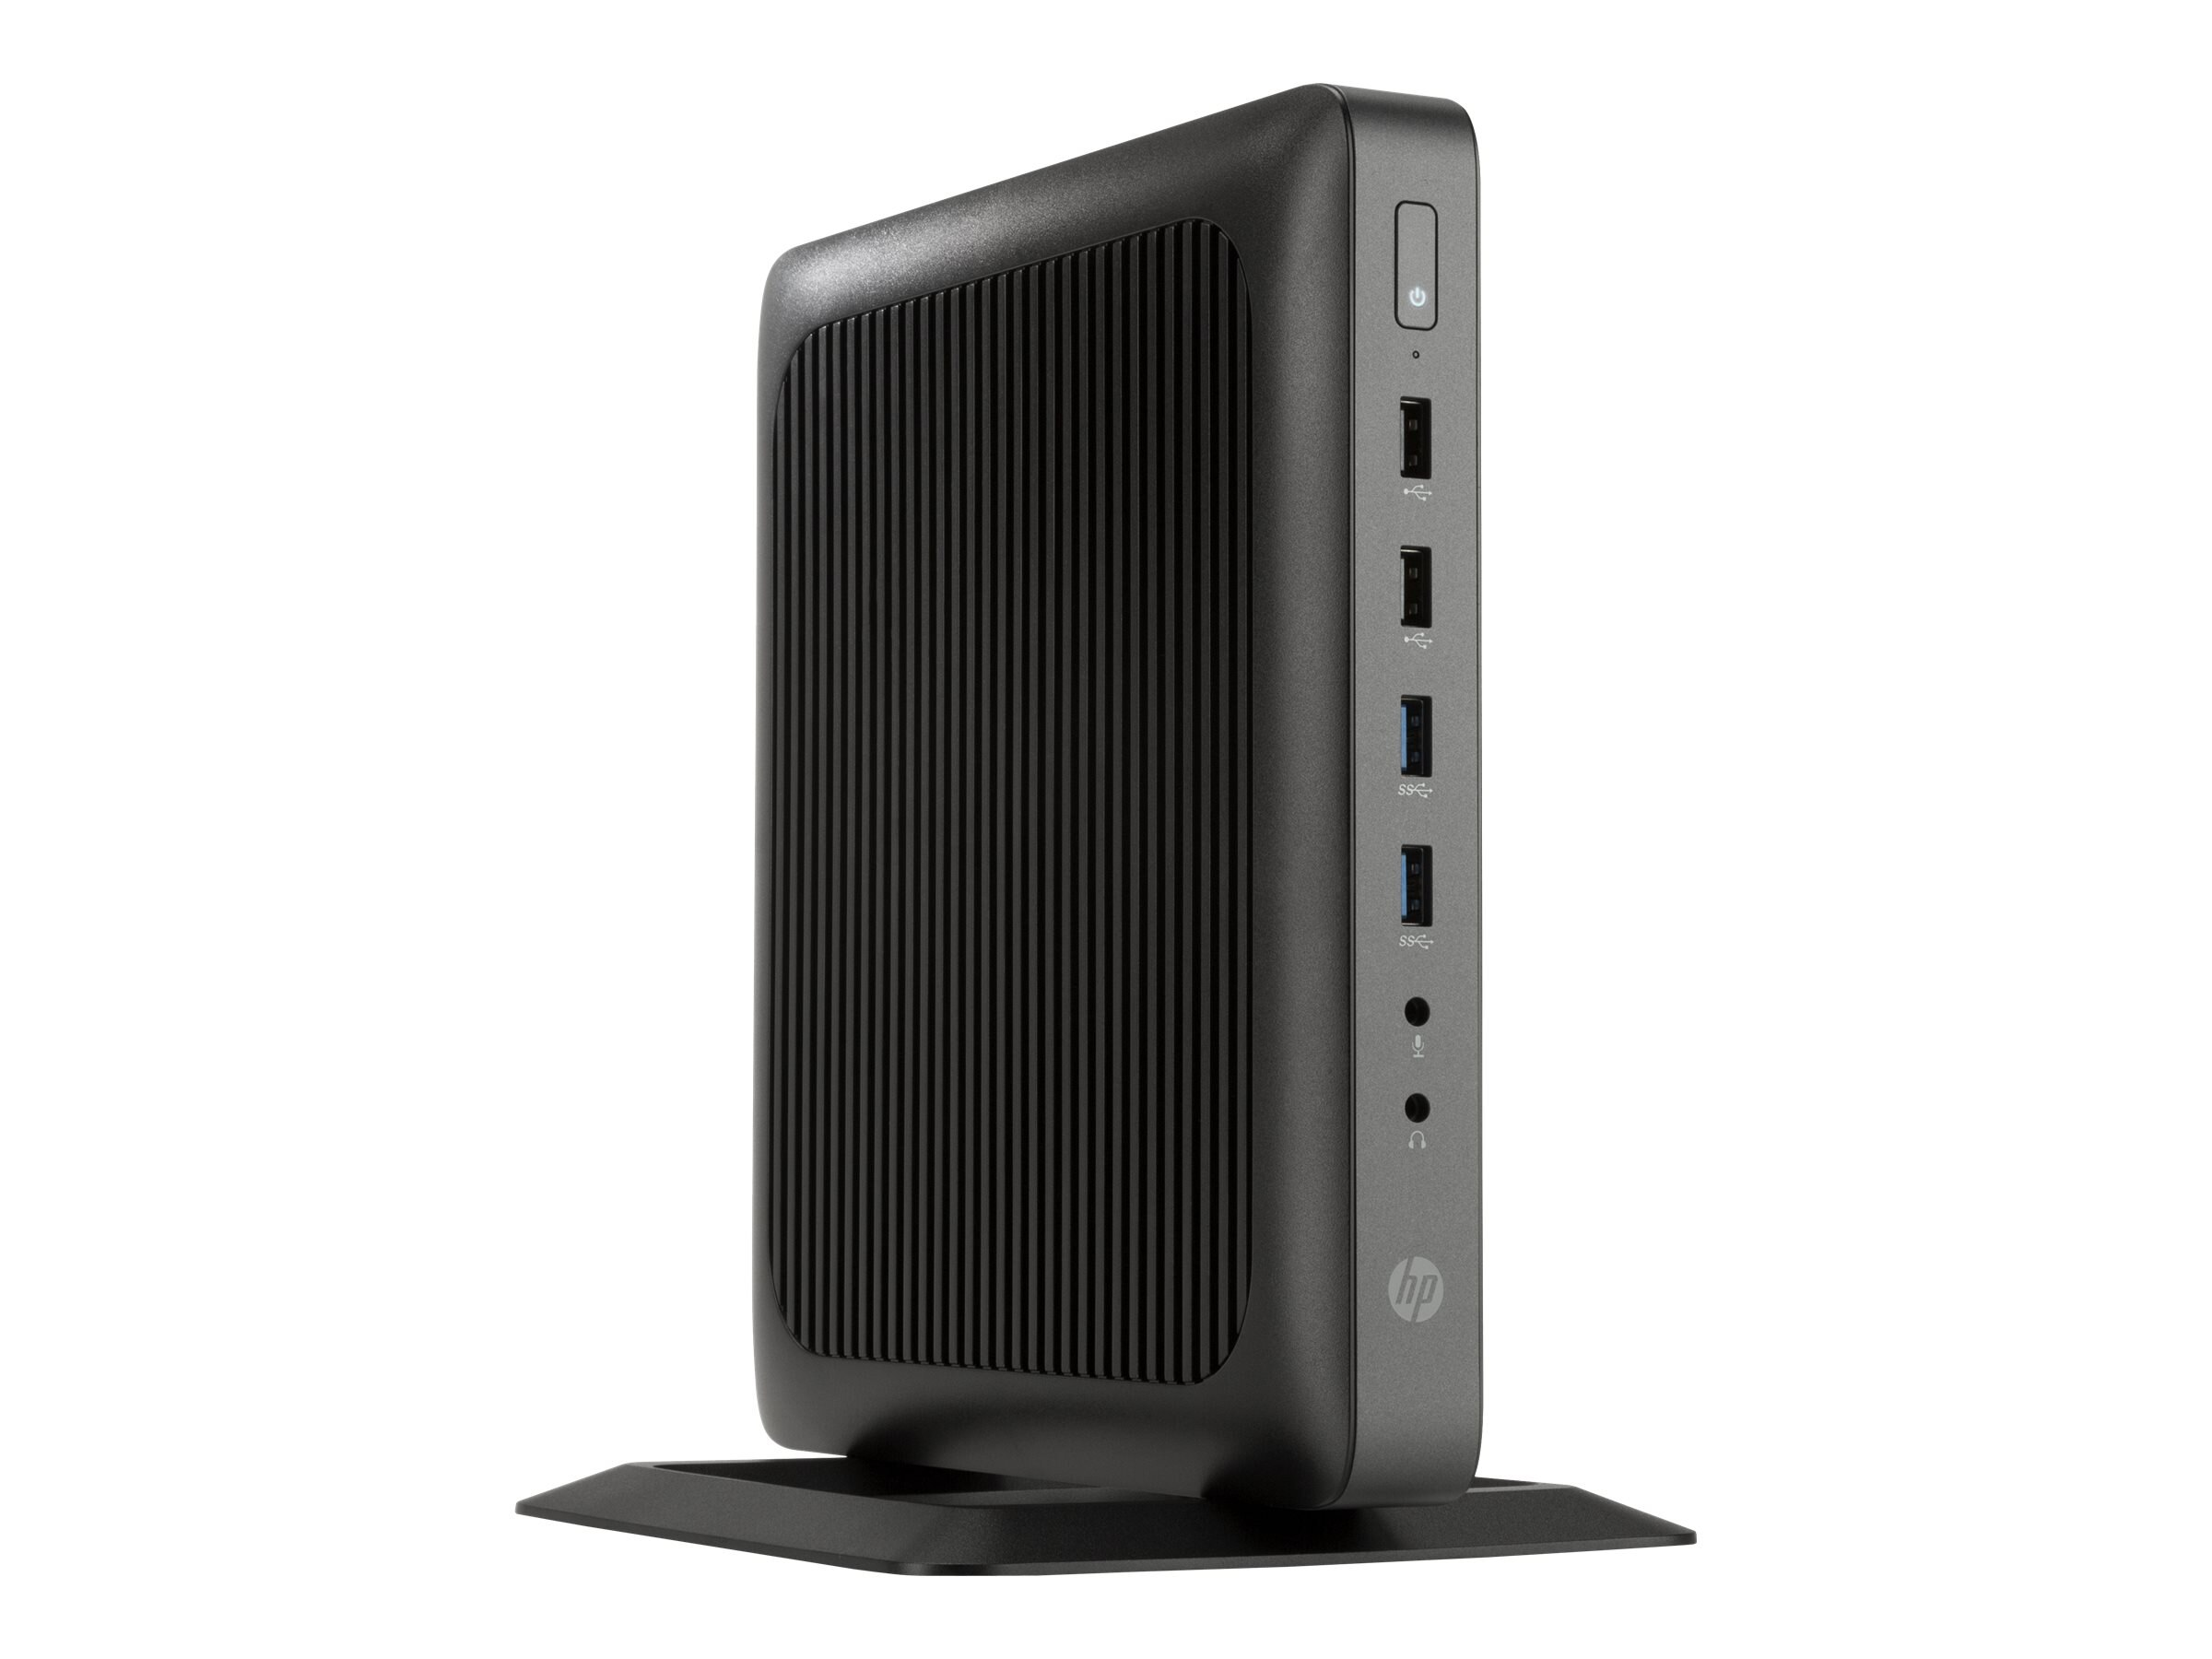 HP t620 Flexible Thin Client AMD QC GX-415GA 1.5GHz 8GB 64GB Flash HD8330E ac BT VGA W10 IoT, V2V58UT#ABA